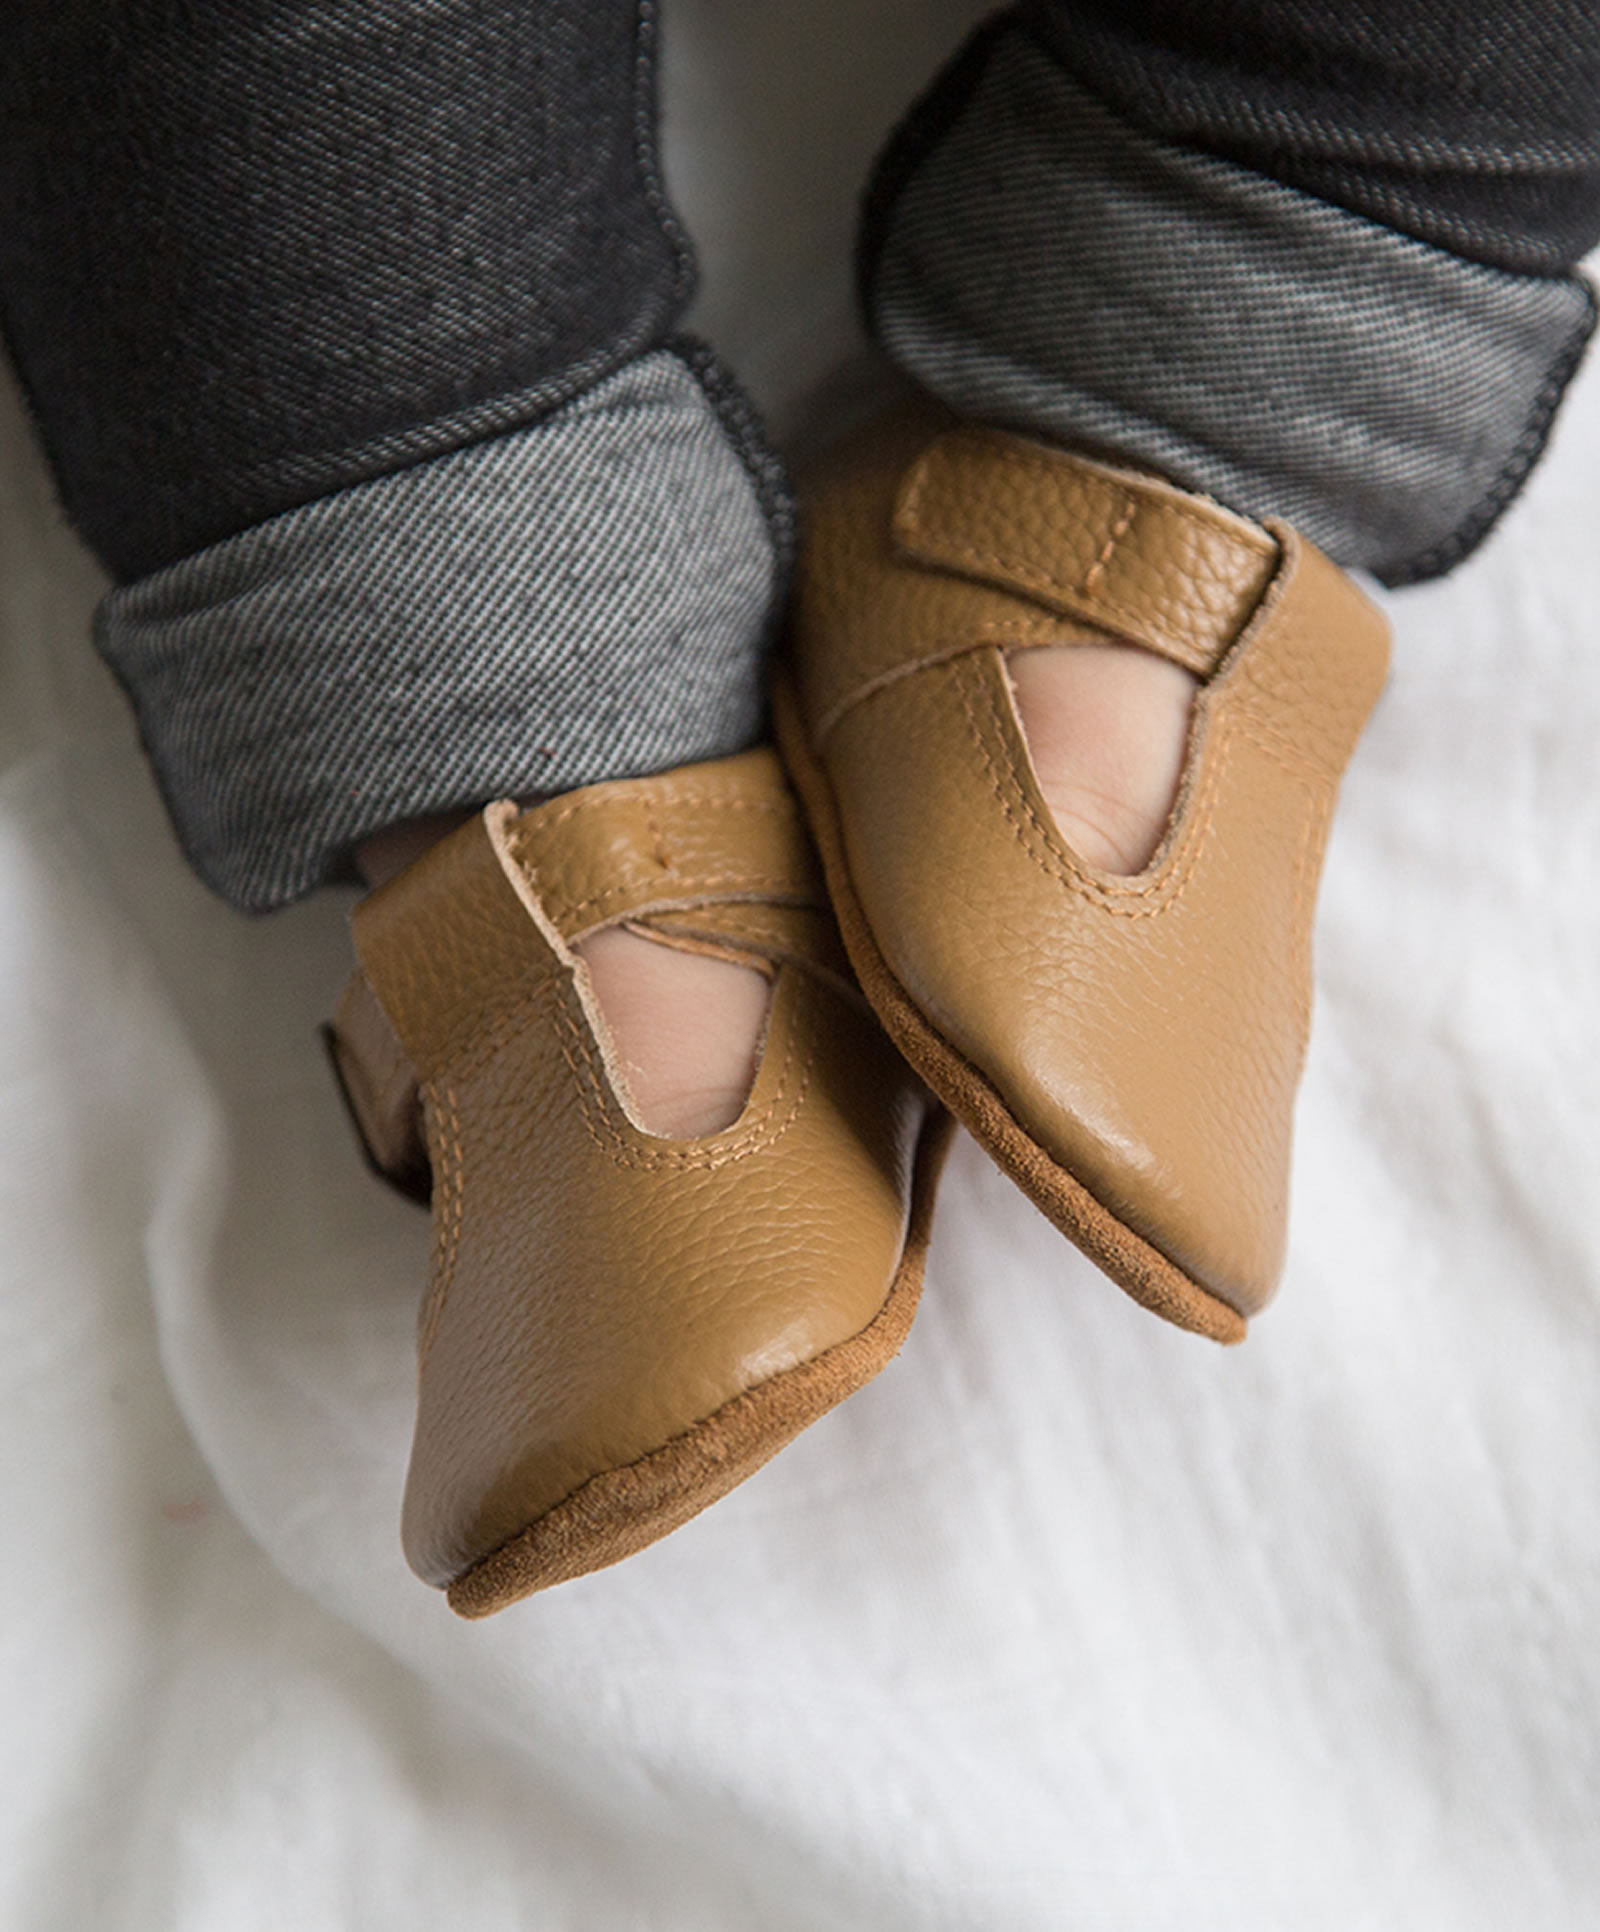 The Shaughnessy Shoe Tan Beautiful baby shoes good for Mom & Baby